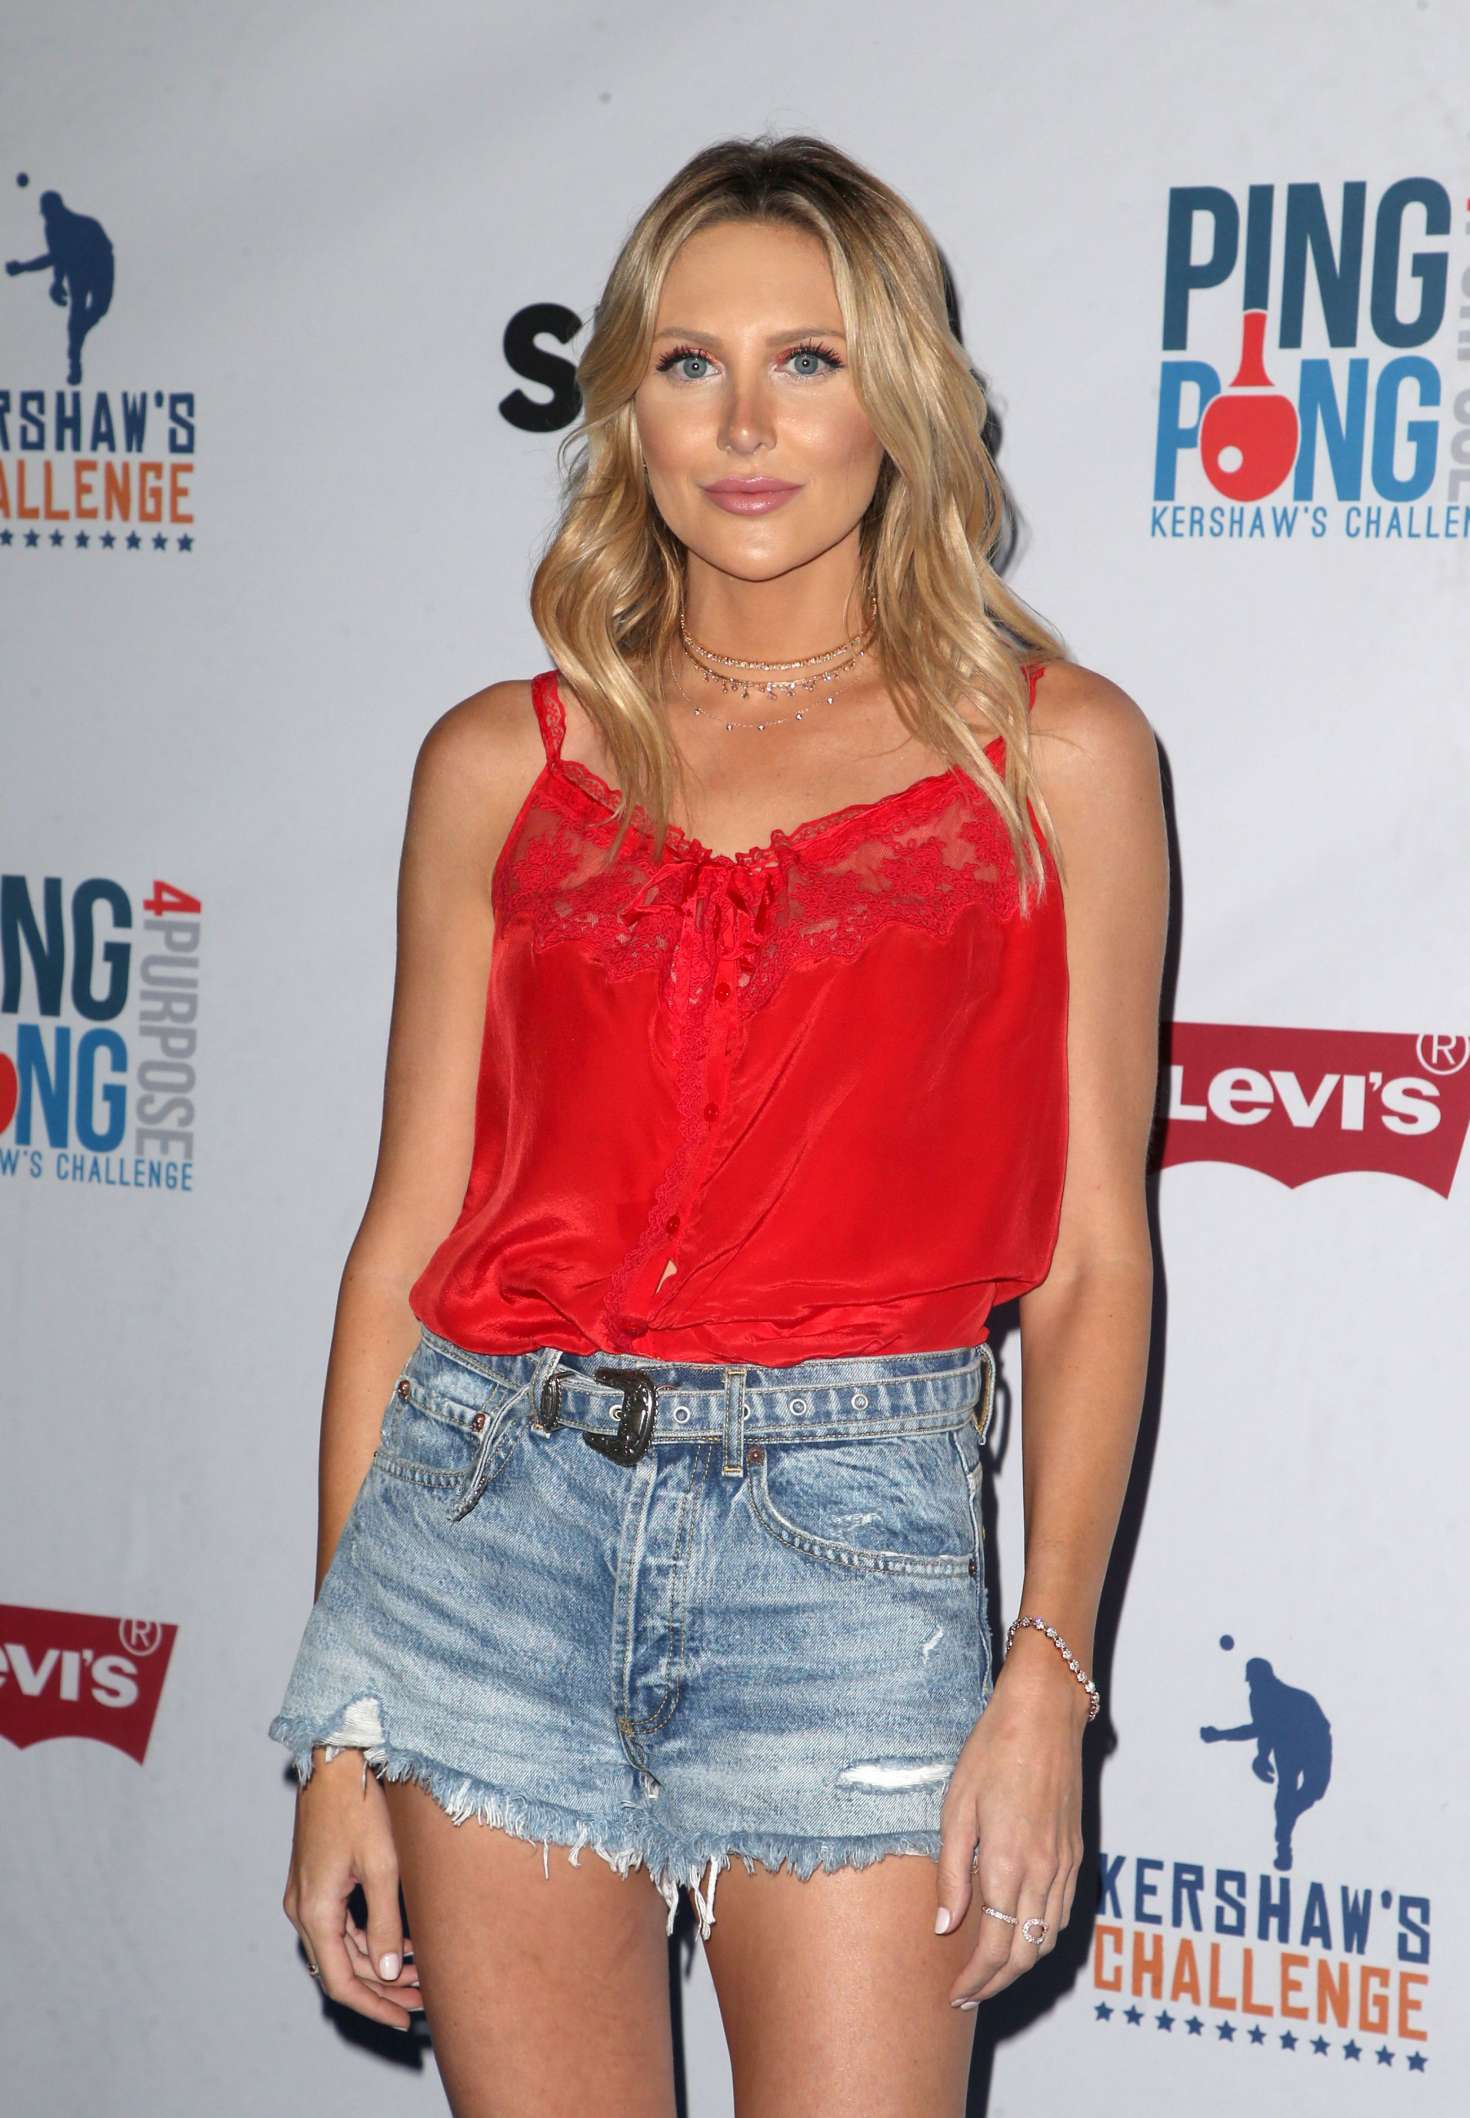 Stephanie Pratt - 6th Annual Ping Pong 4 Purpose in LA